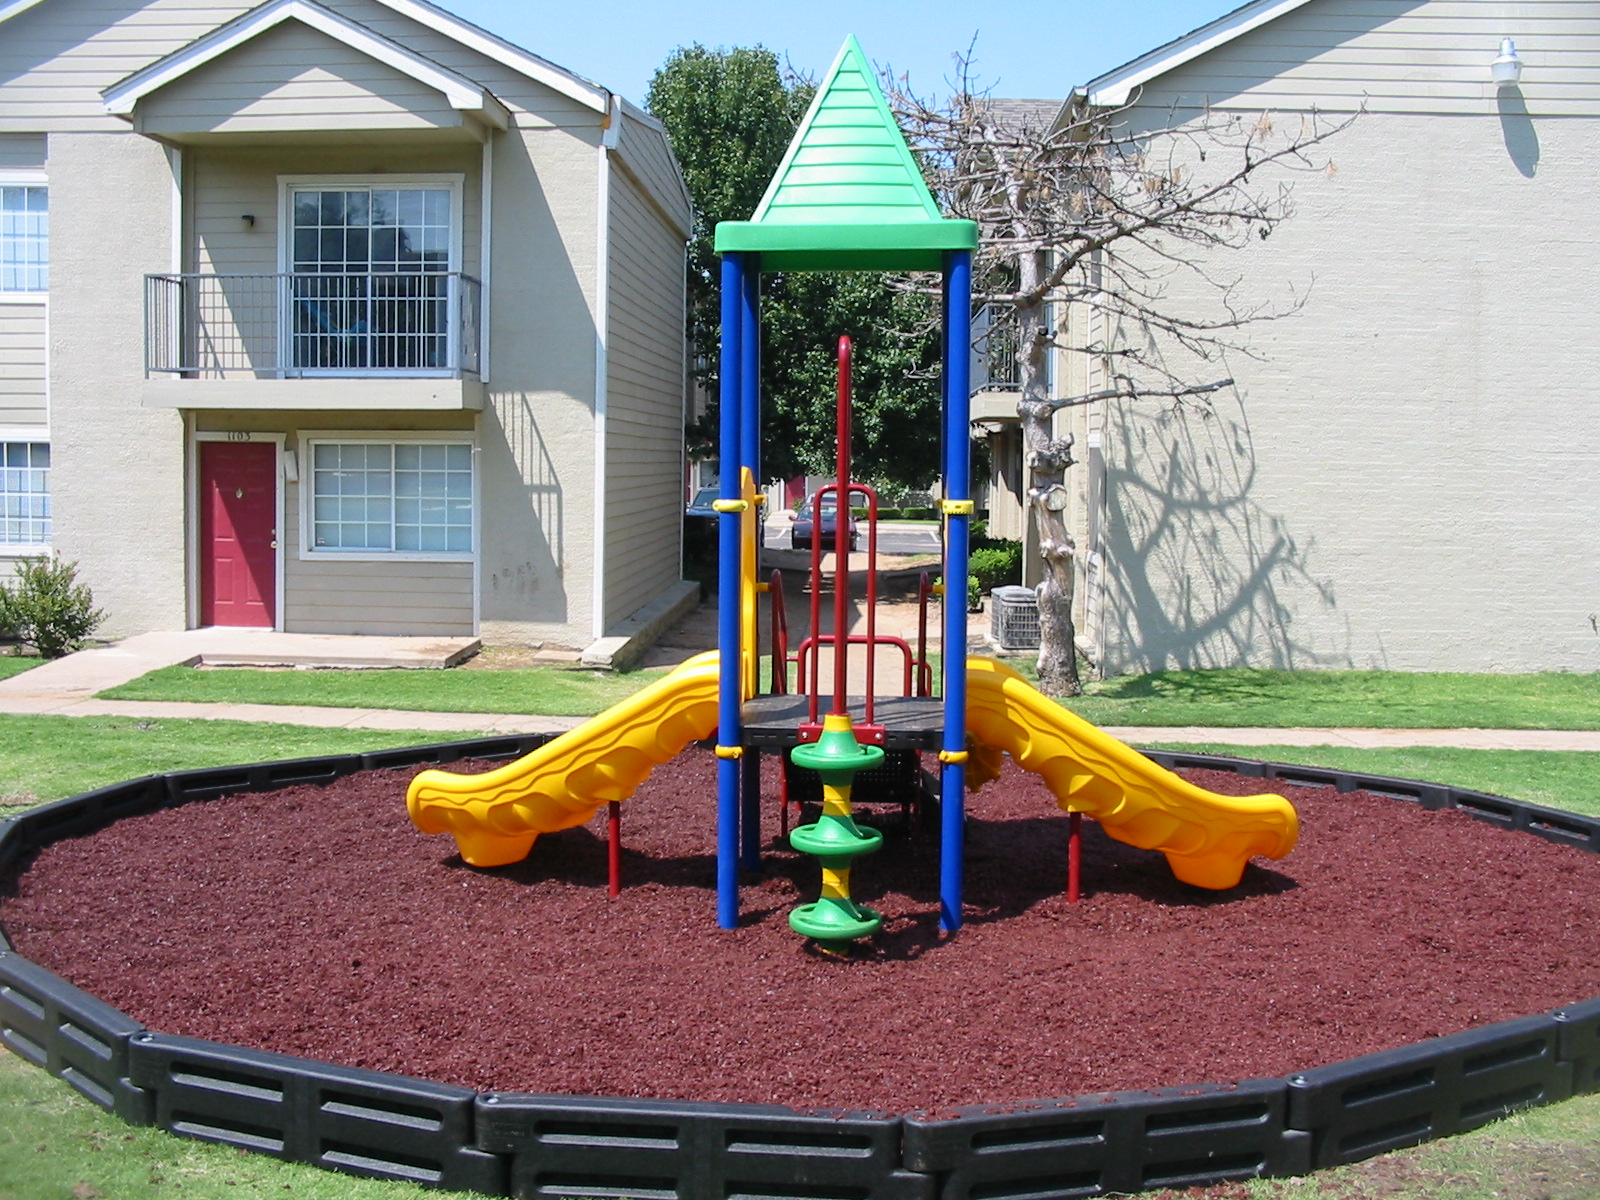 Noahs Park and Playgrounds, LLC image 0